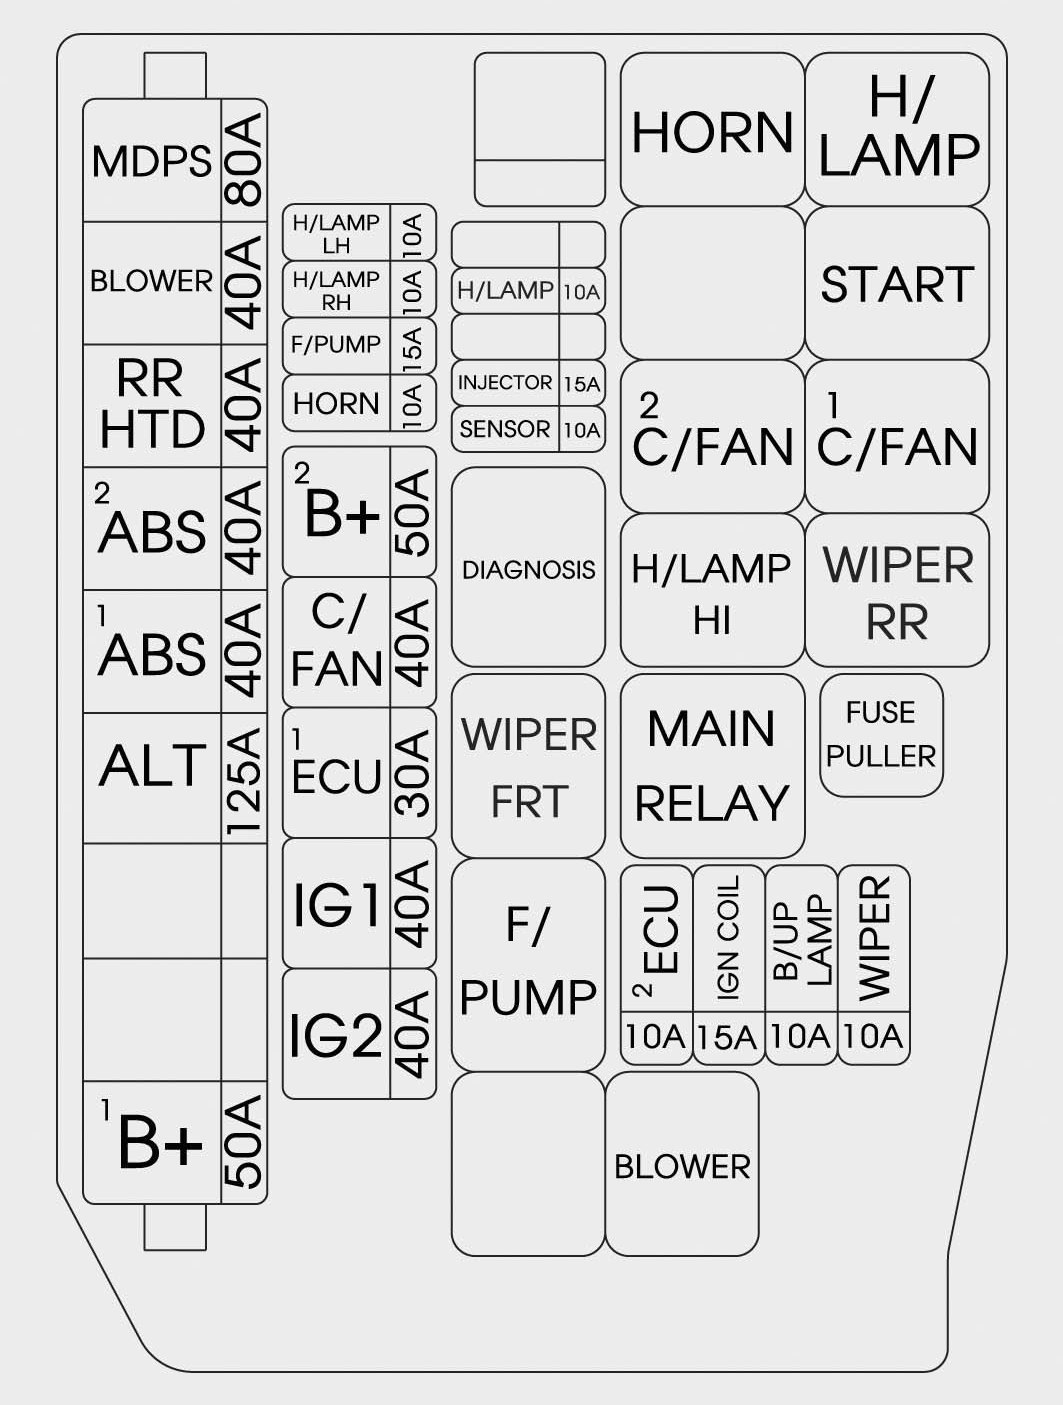 Wiring Diagram Hyundai Accent 2009